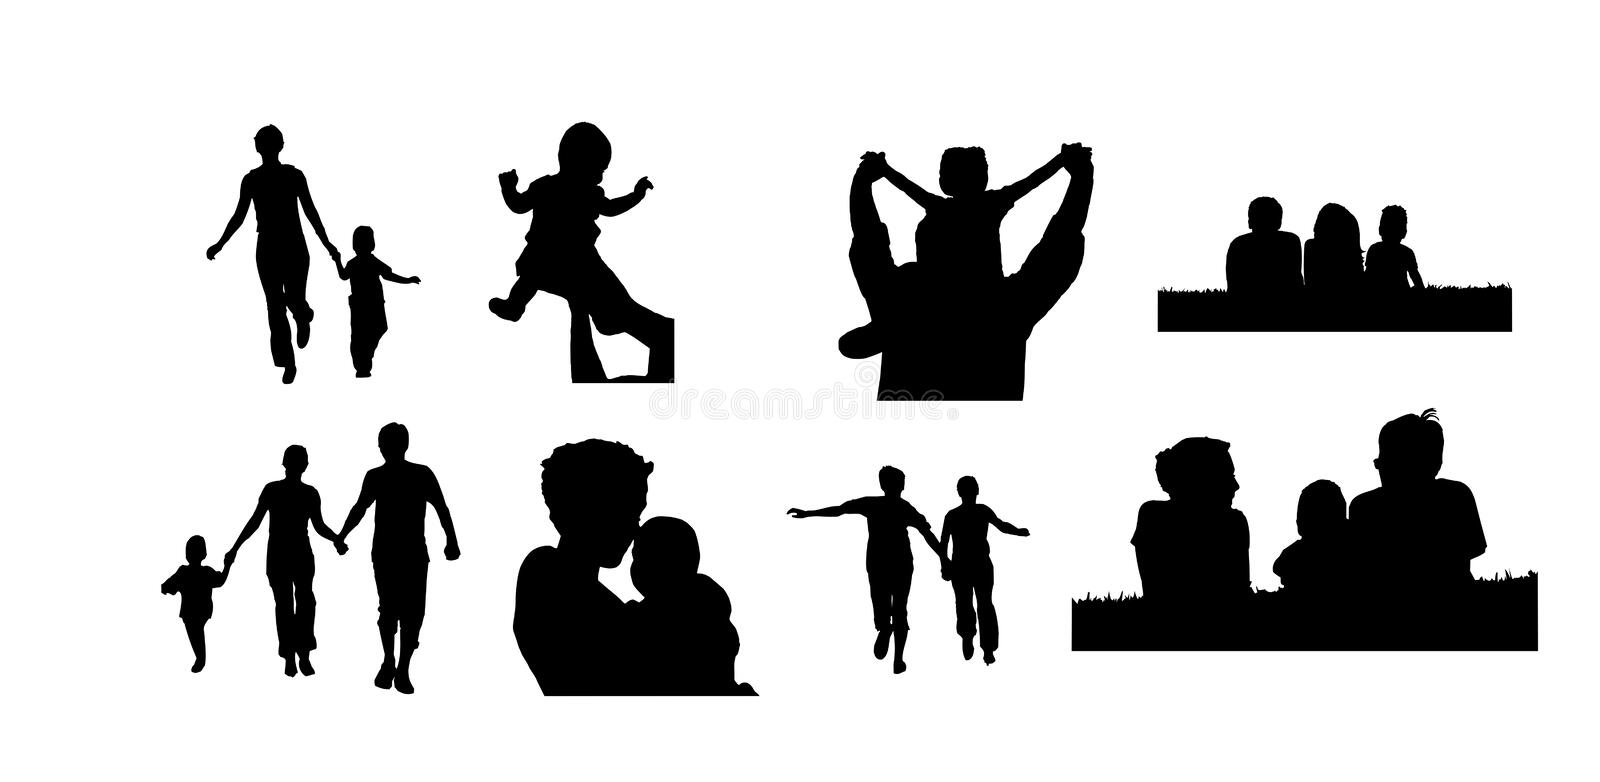 african american family silhouette vector illustration with family silhouettes stock vector american silhouette family african